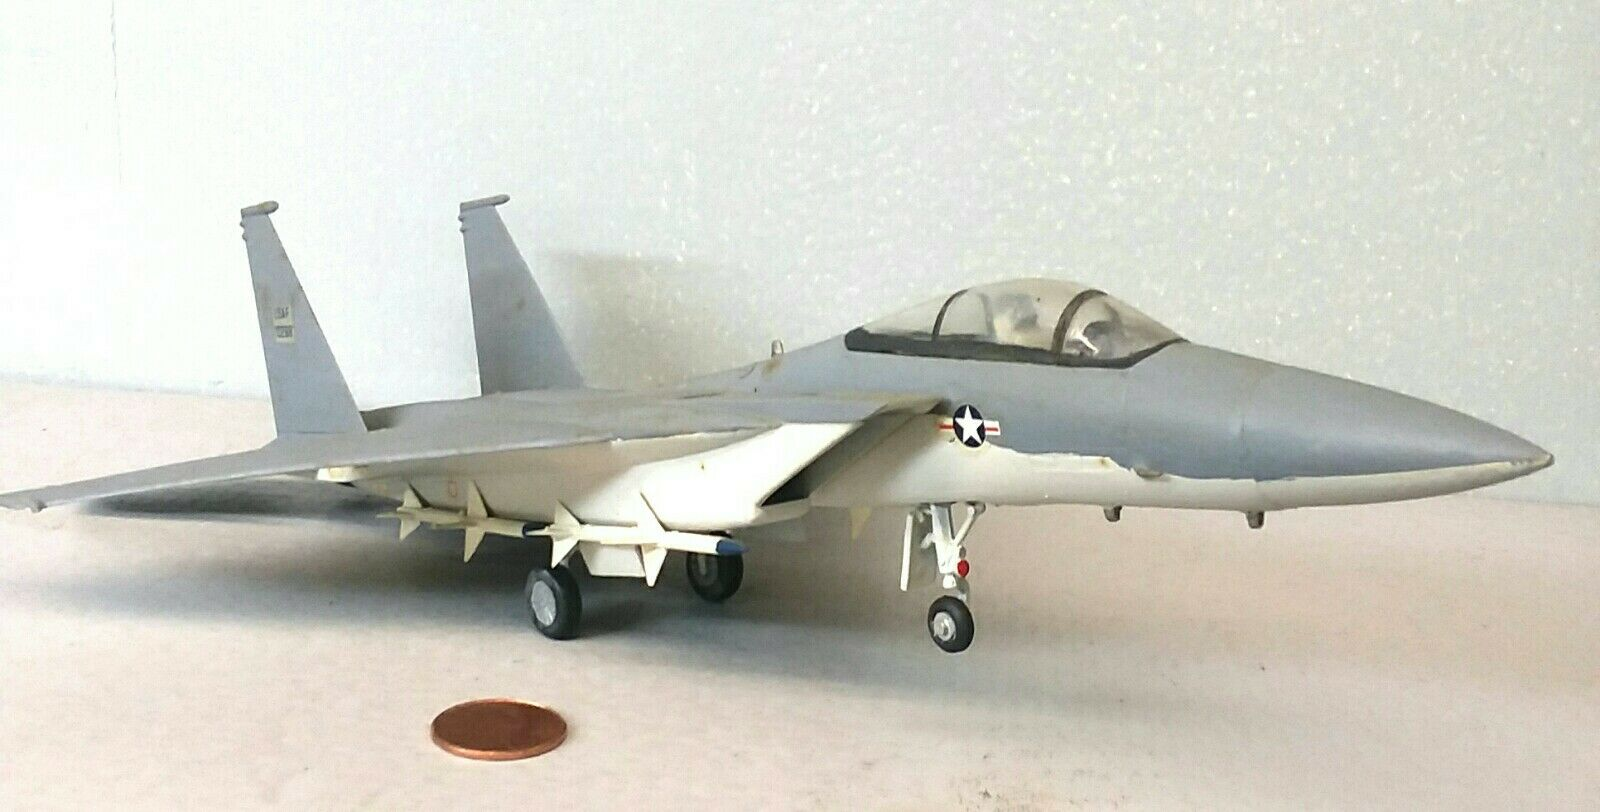 1 72 skala Rough Paint Built Plastic modelllllerler Airplan F15 Eagle Jet